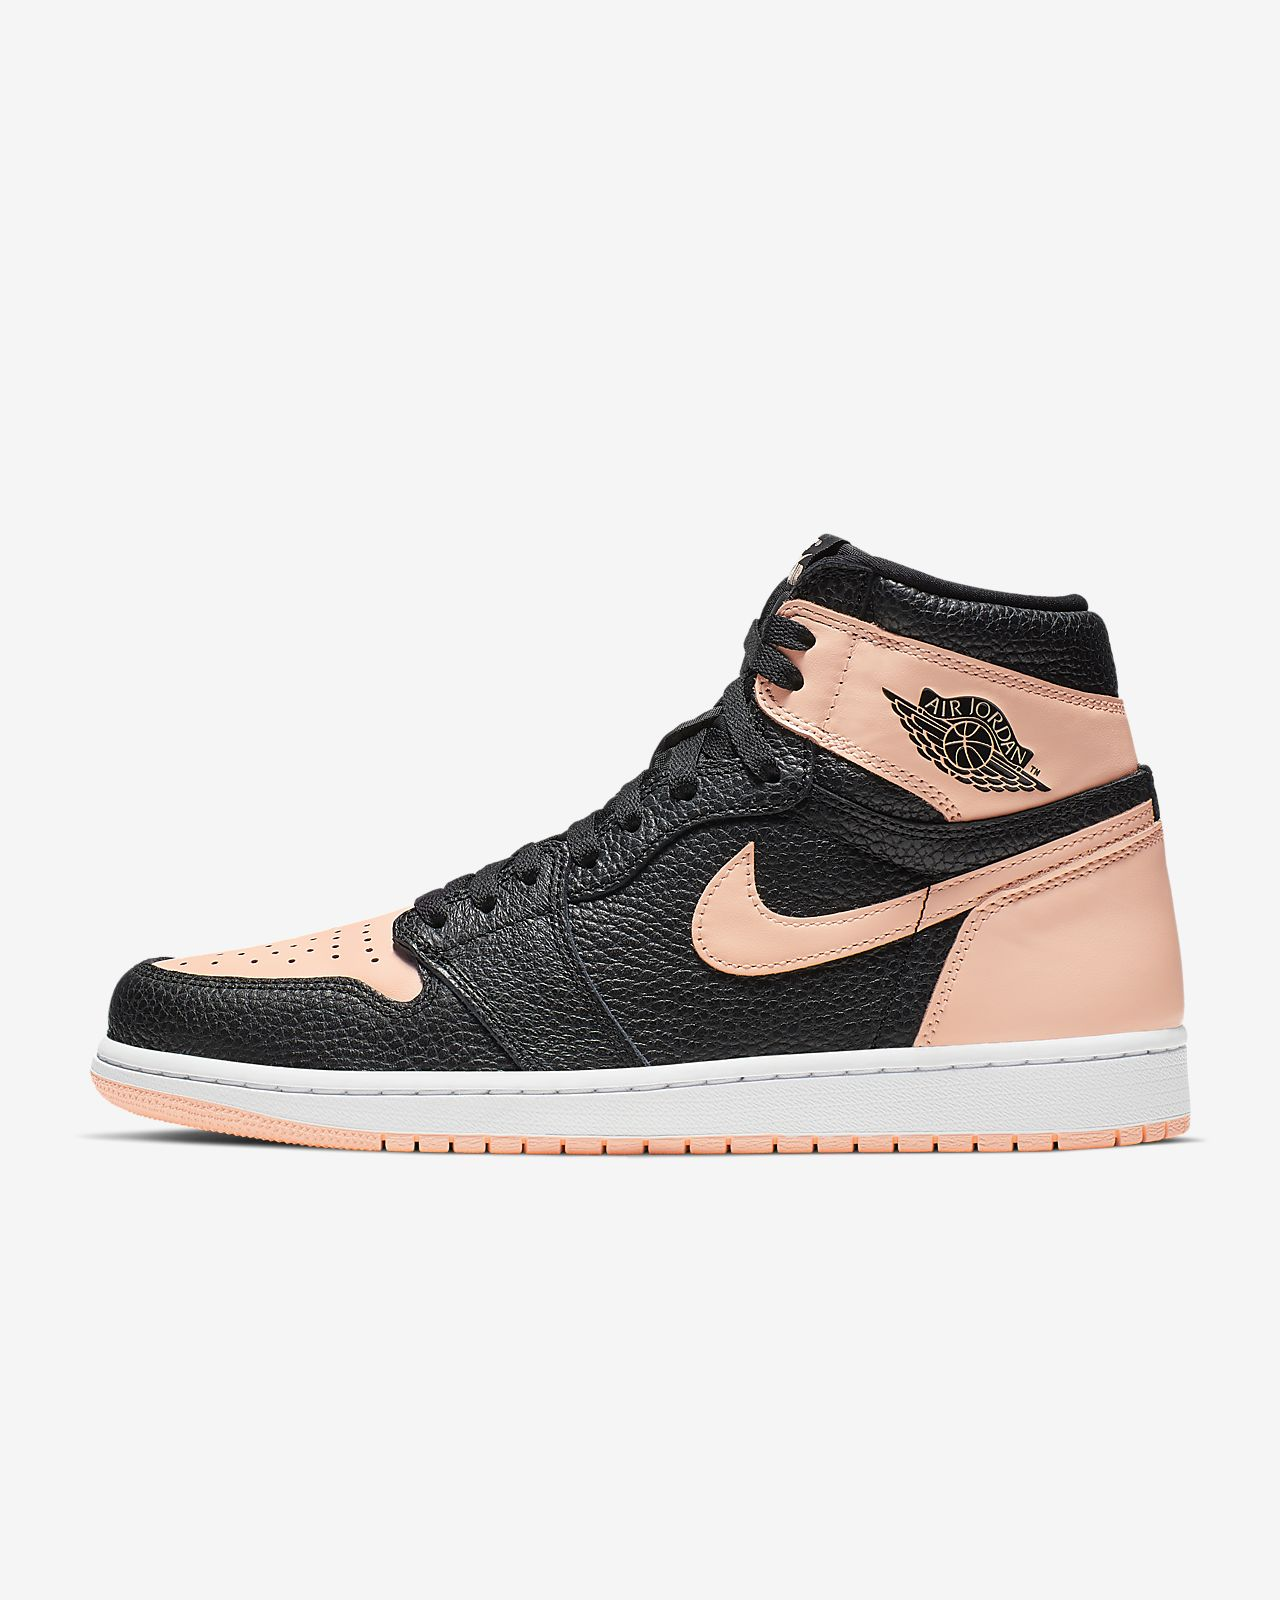 new concept bab77 a72b3 Air Jordan 1 Retro High OG